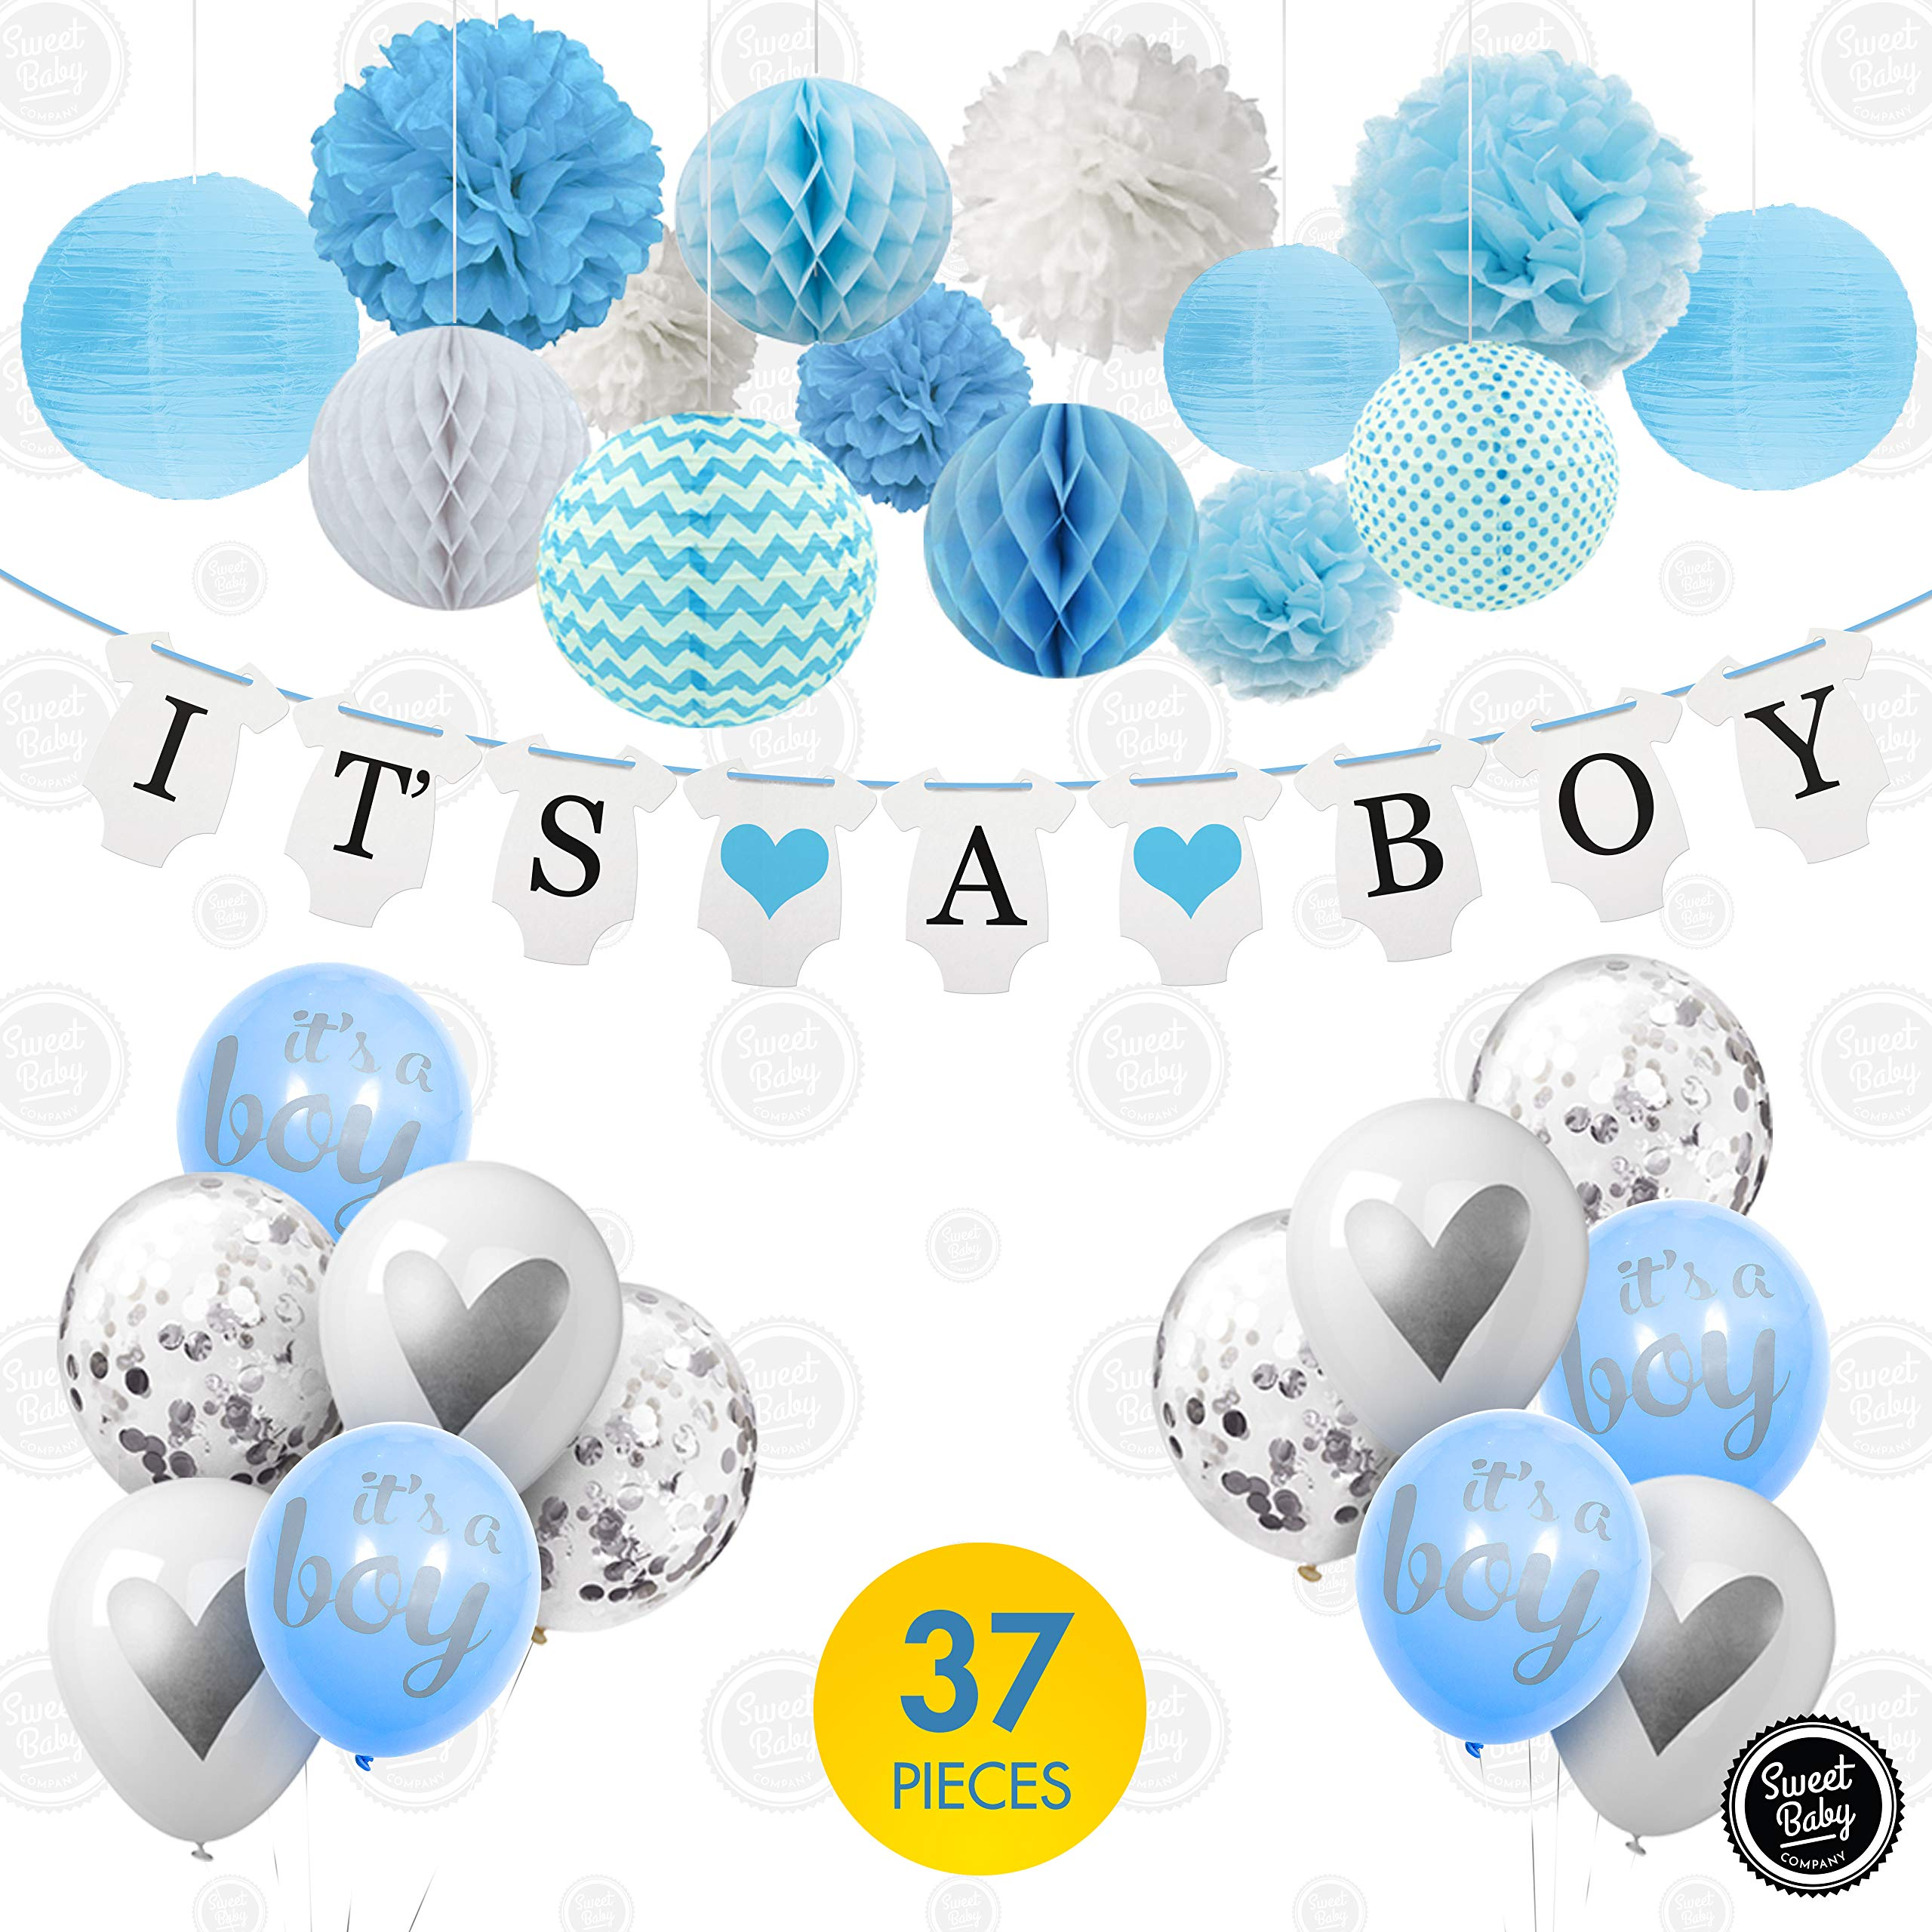 Sweet Baby Co. Baby Shower Decorations For Boy With It's A Boy Banner, Paper Lanterns, Honeycomb Balls, Paper Tissue Pom Poms, Confetti Balloons, Silver Balloon Ribbon (Baby Blue, True Blue, Grey and White)   Baby Shower Decorations Set by Sweet Baby Company (Image #2)